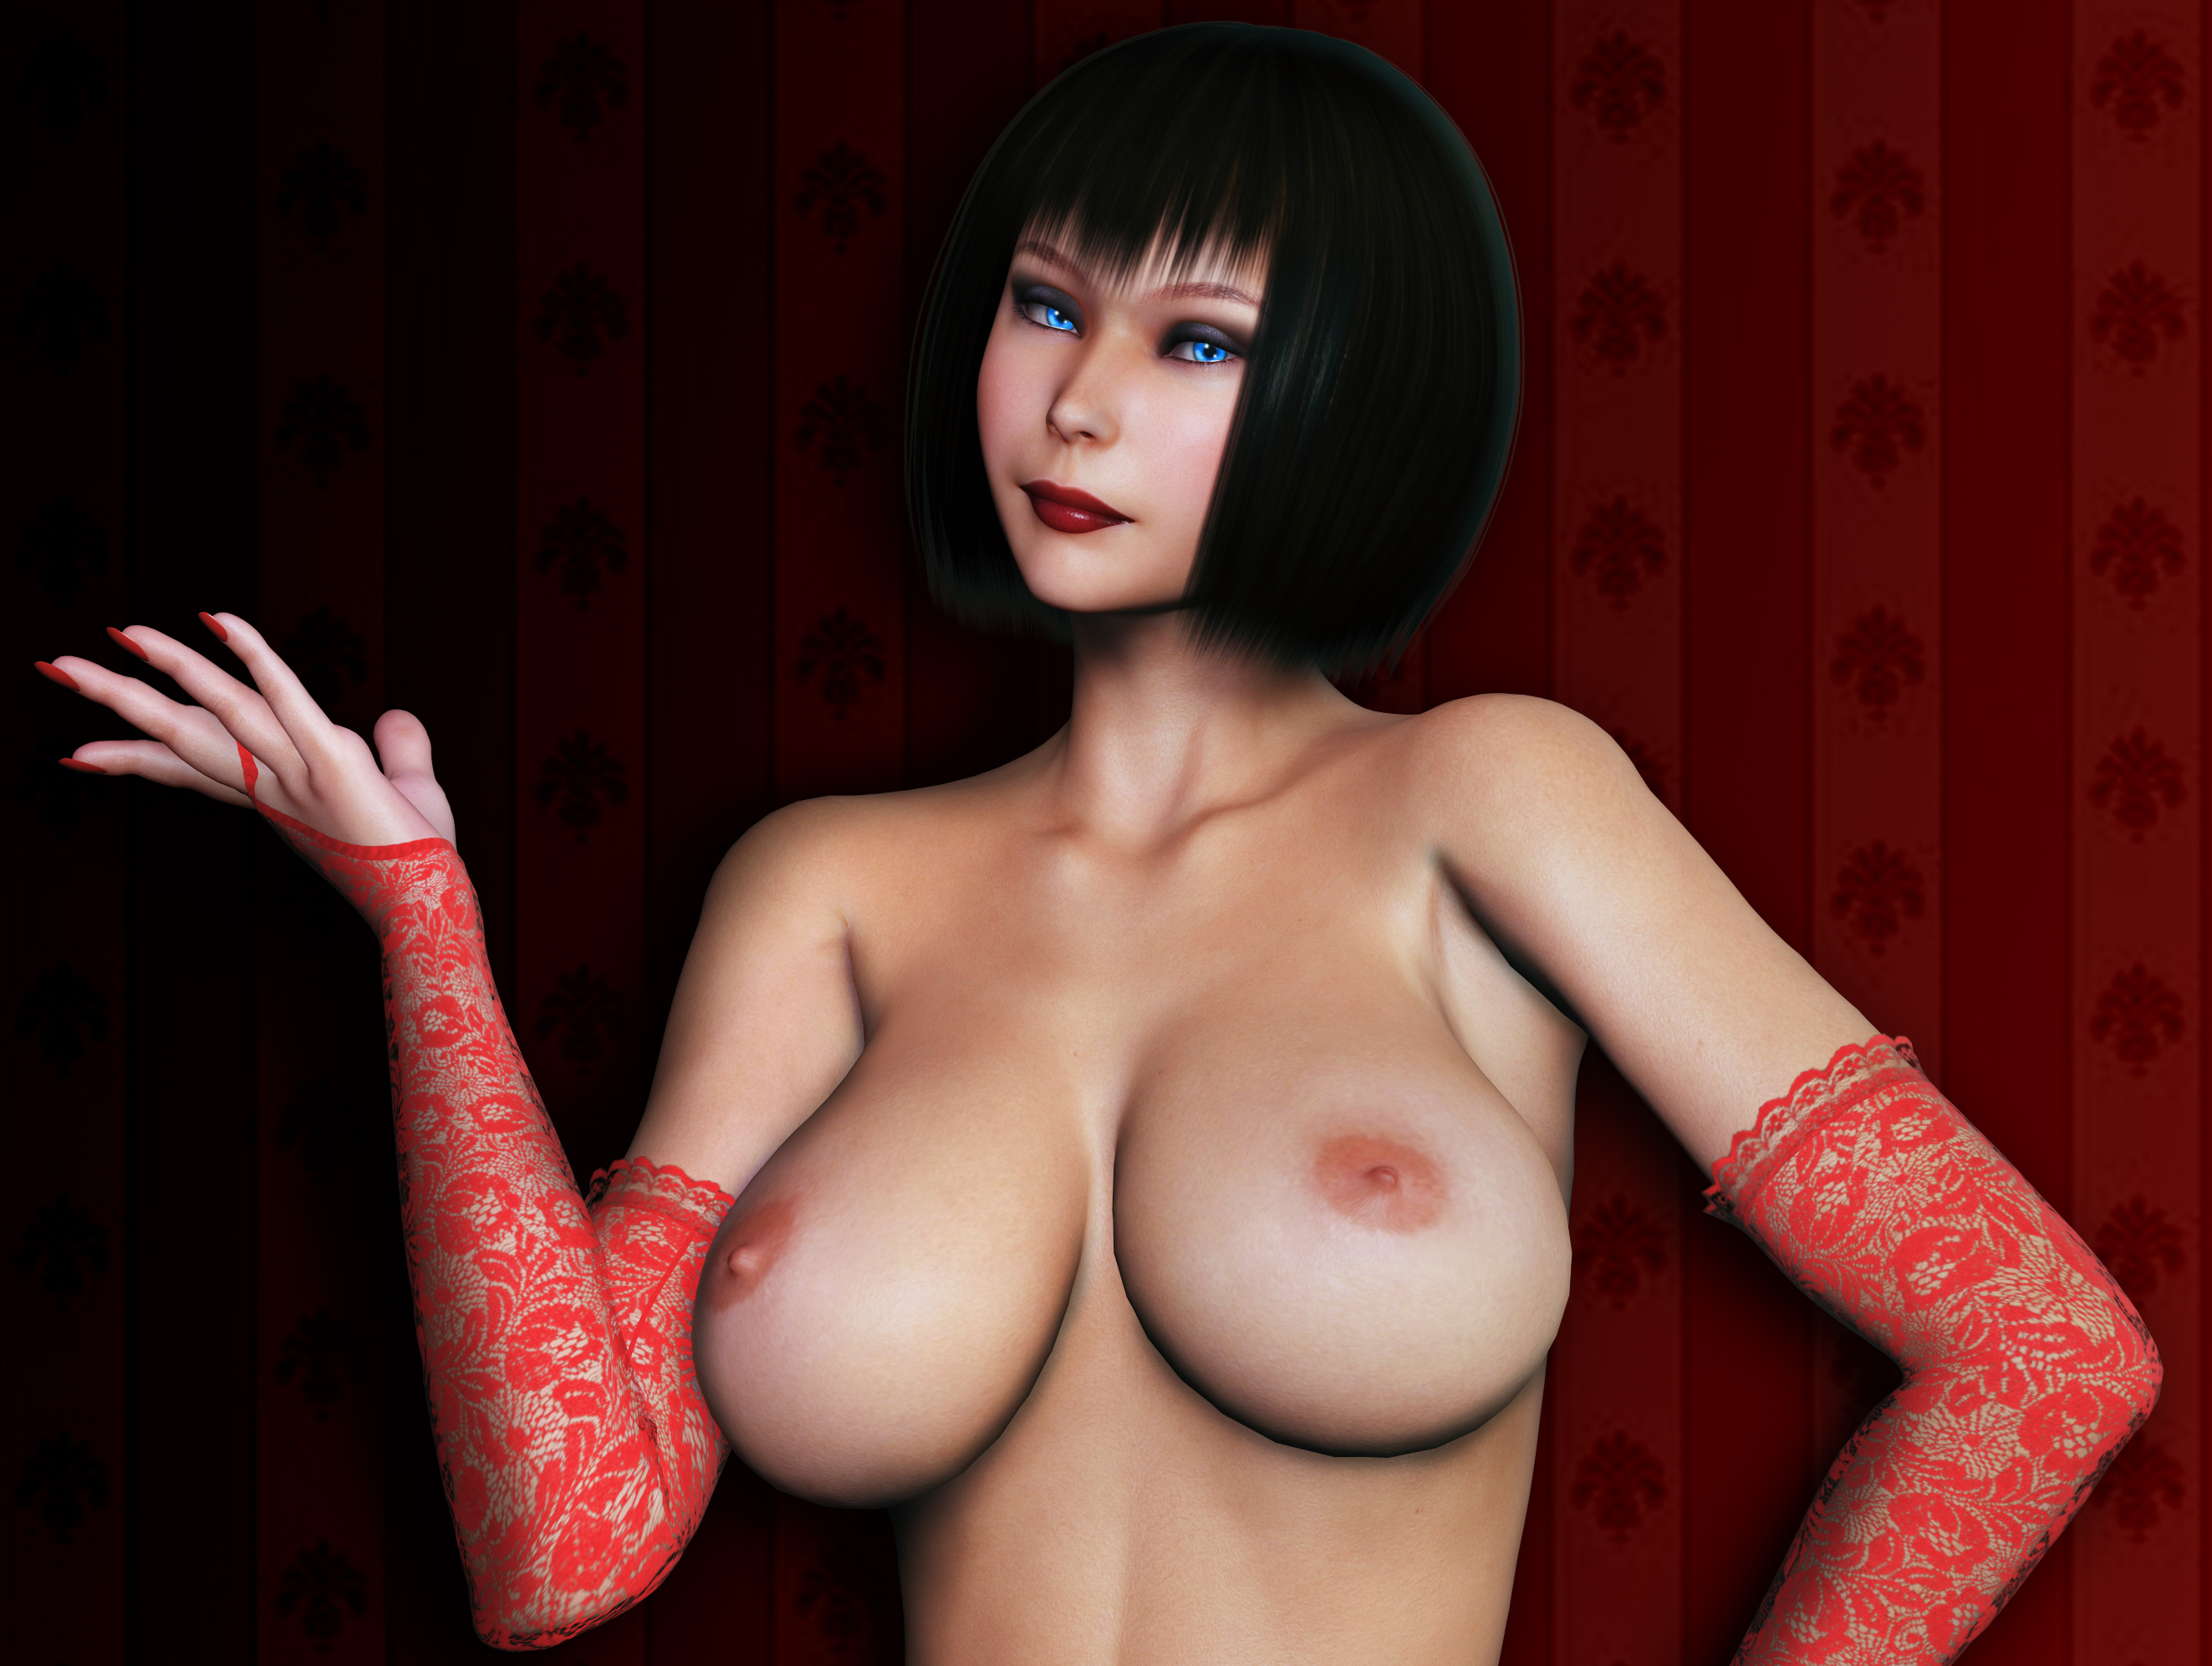 naked-tekken-girls-free-sex-massages-video